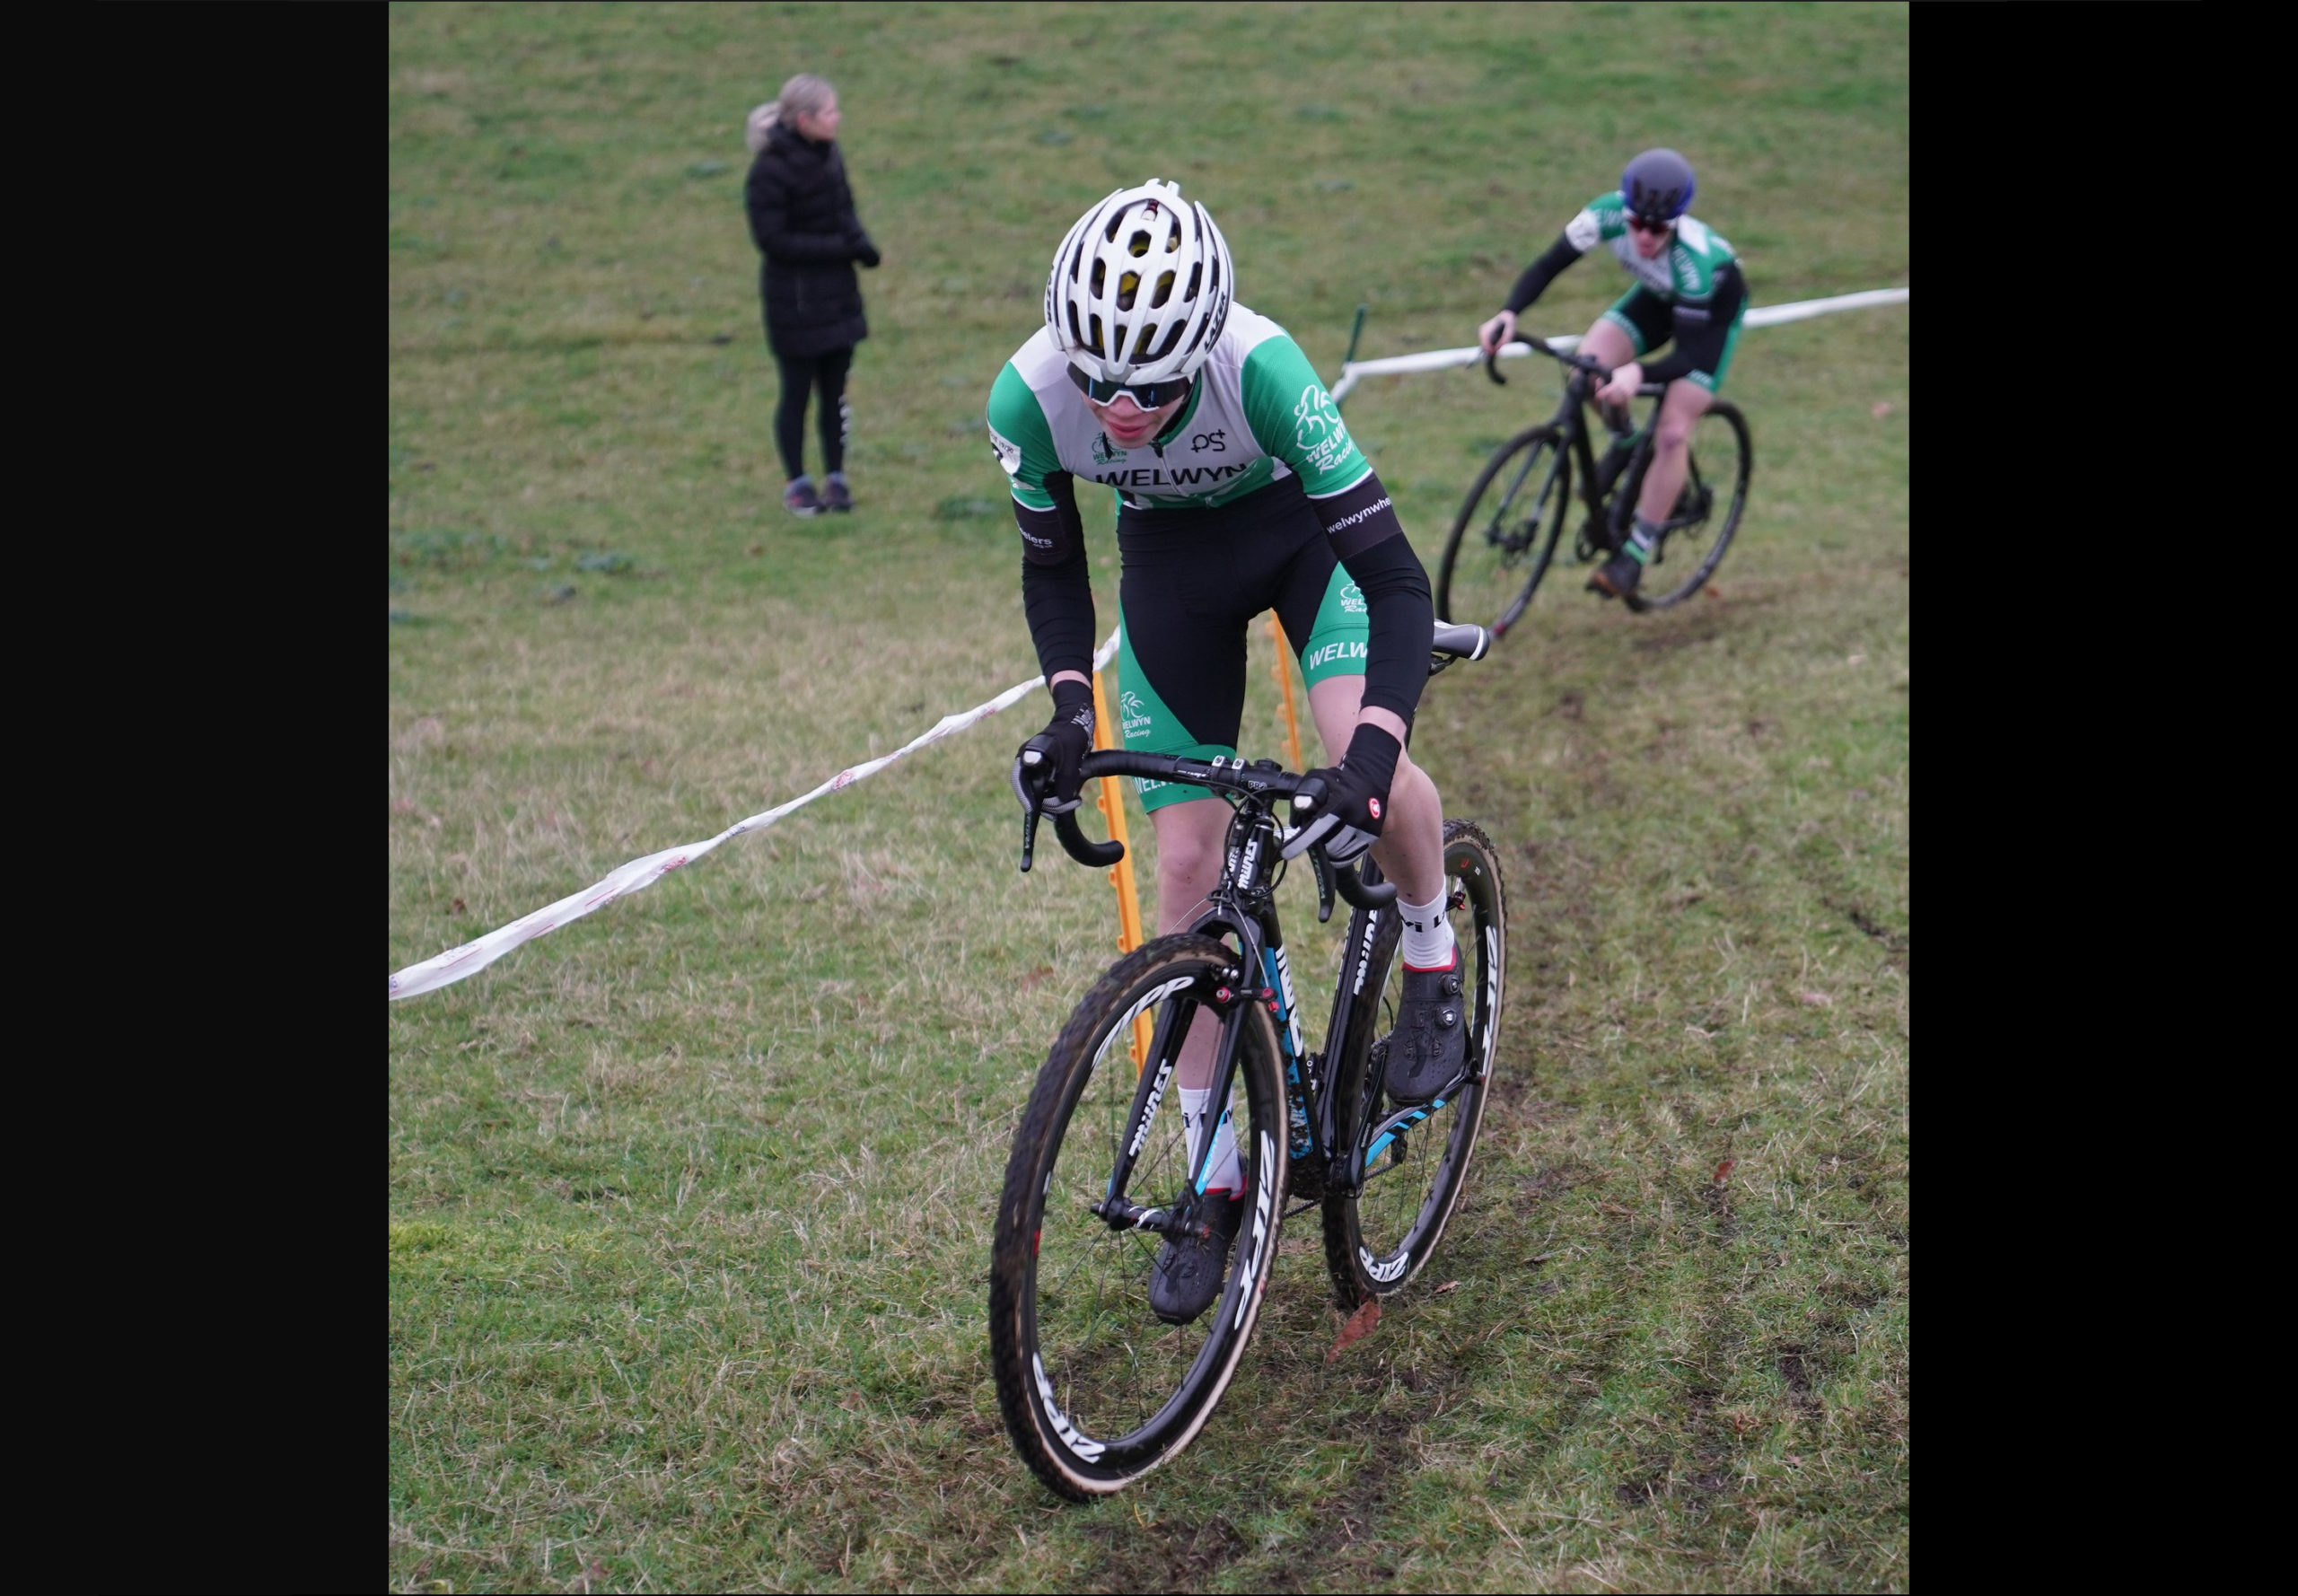 Euan Woodliffe leads Nathan Hardy in the Stow Scramble Youth Race